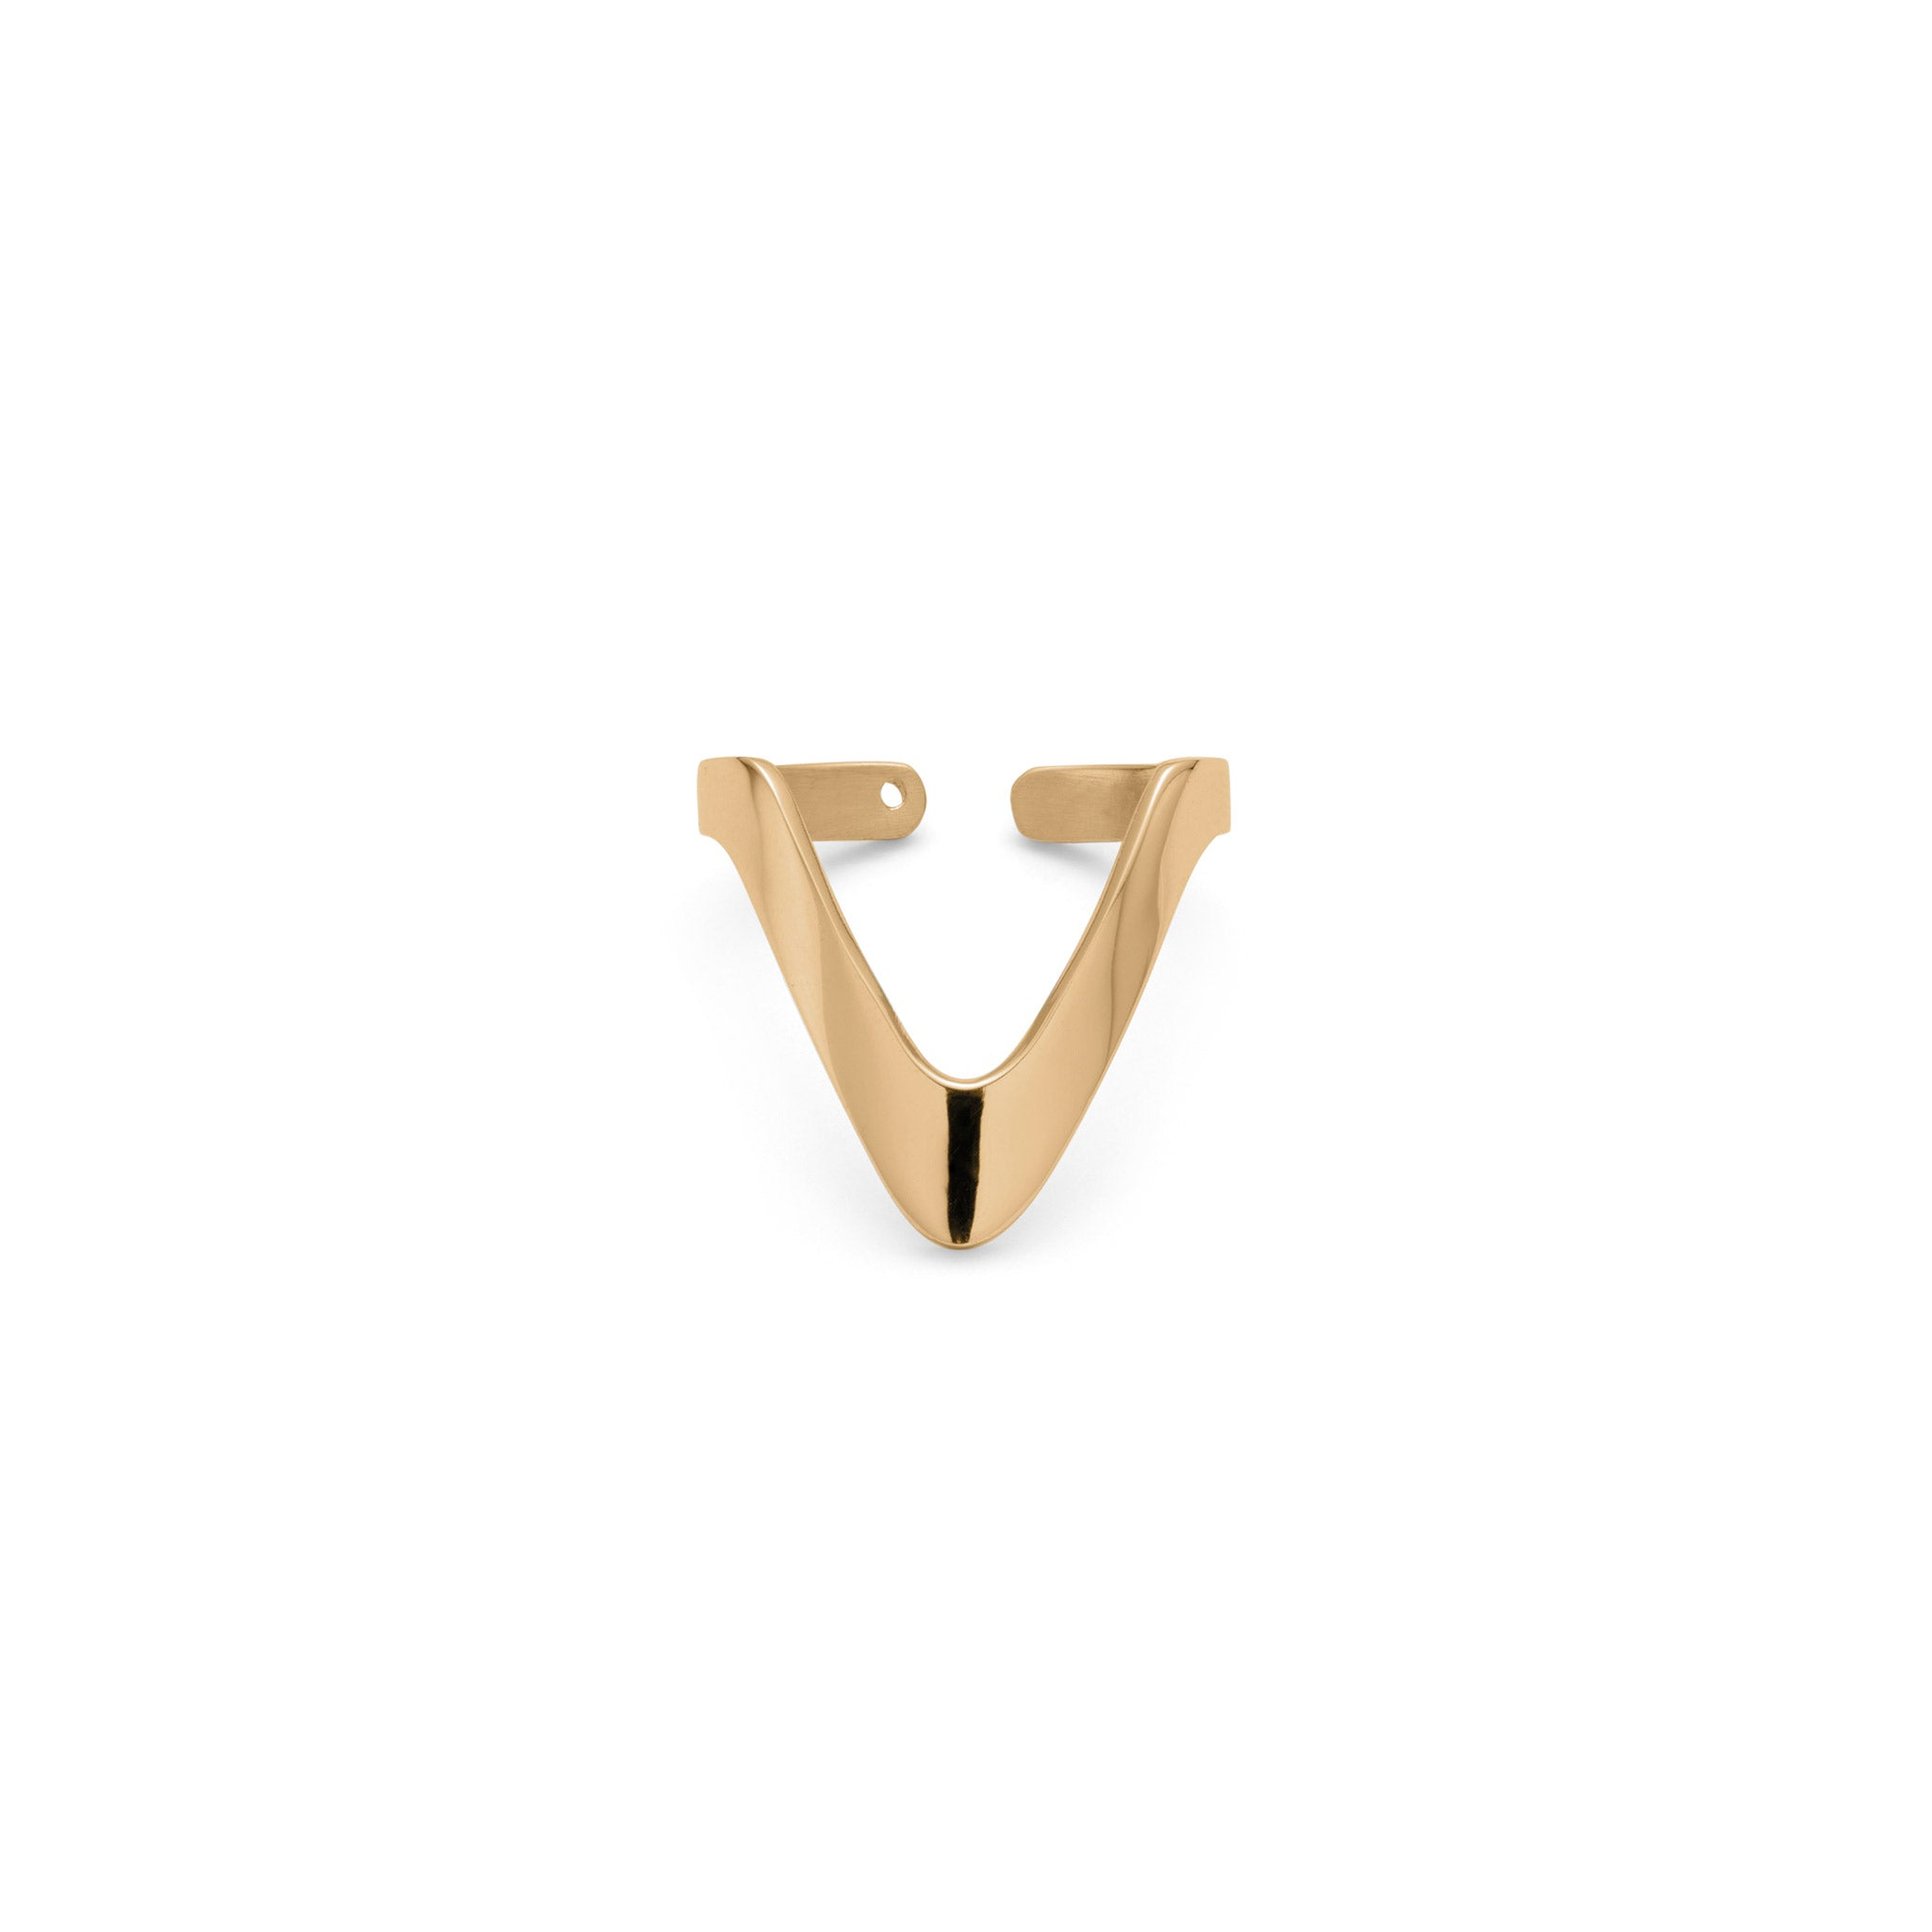 Midi Ring - Large Triangle Stackable Midi Ring